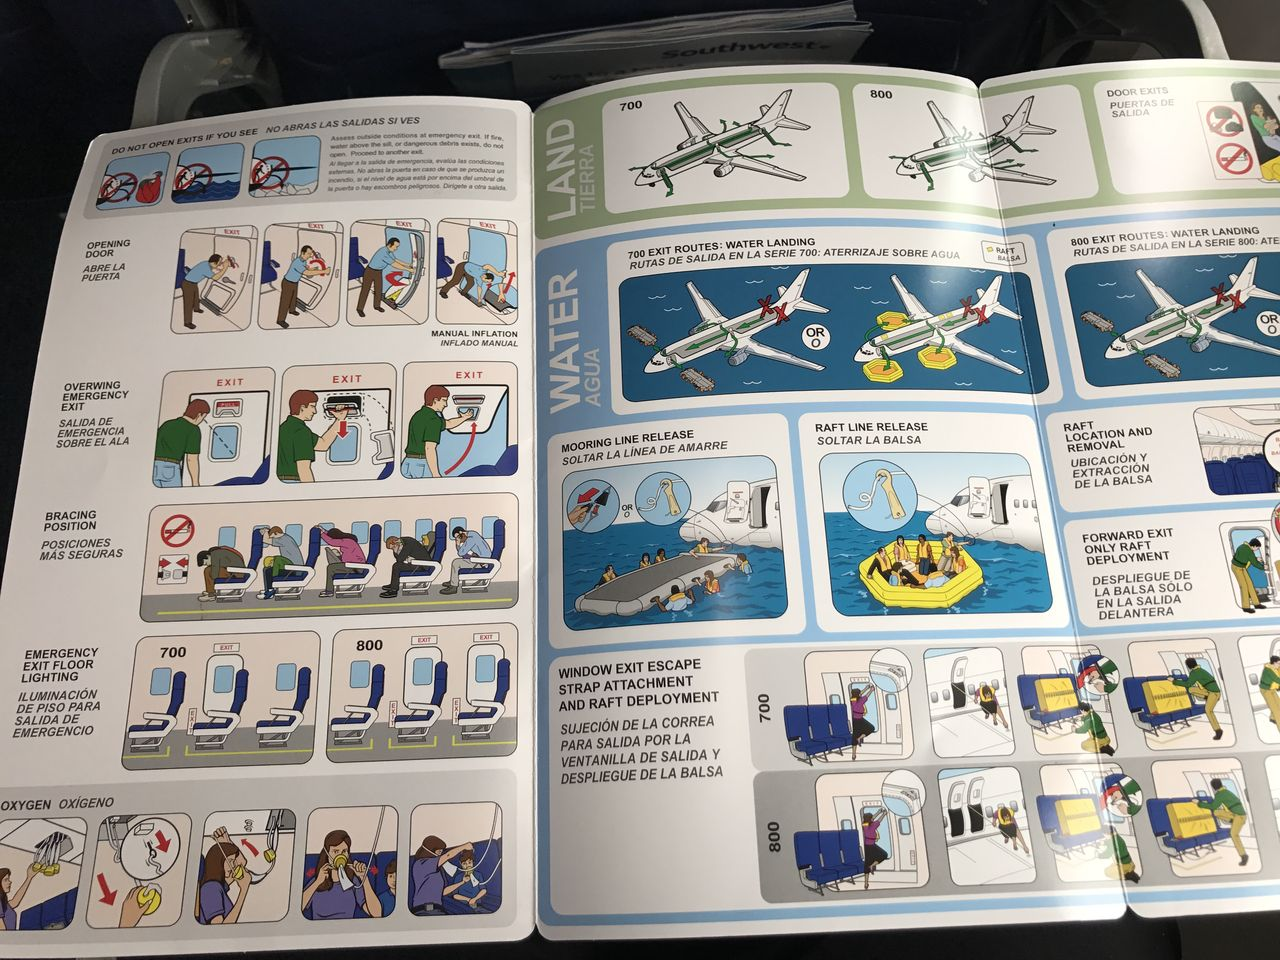 Southwest Airlines Fleet Boeing 737 800 Safety Information and Emergency Instructions Card